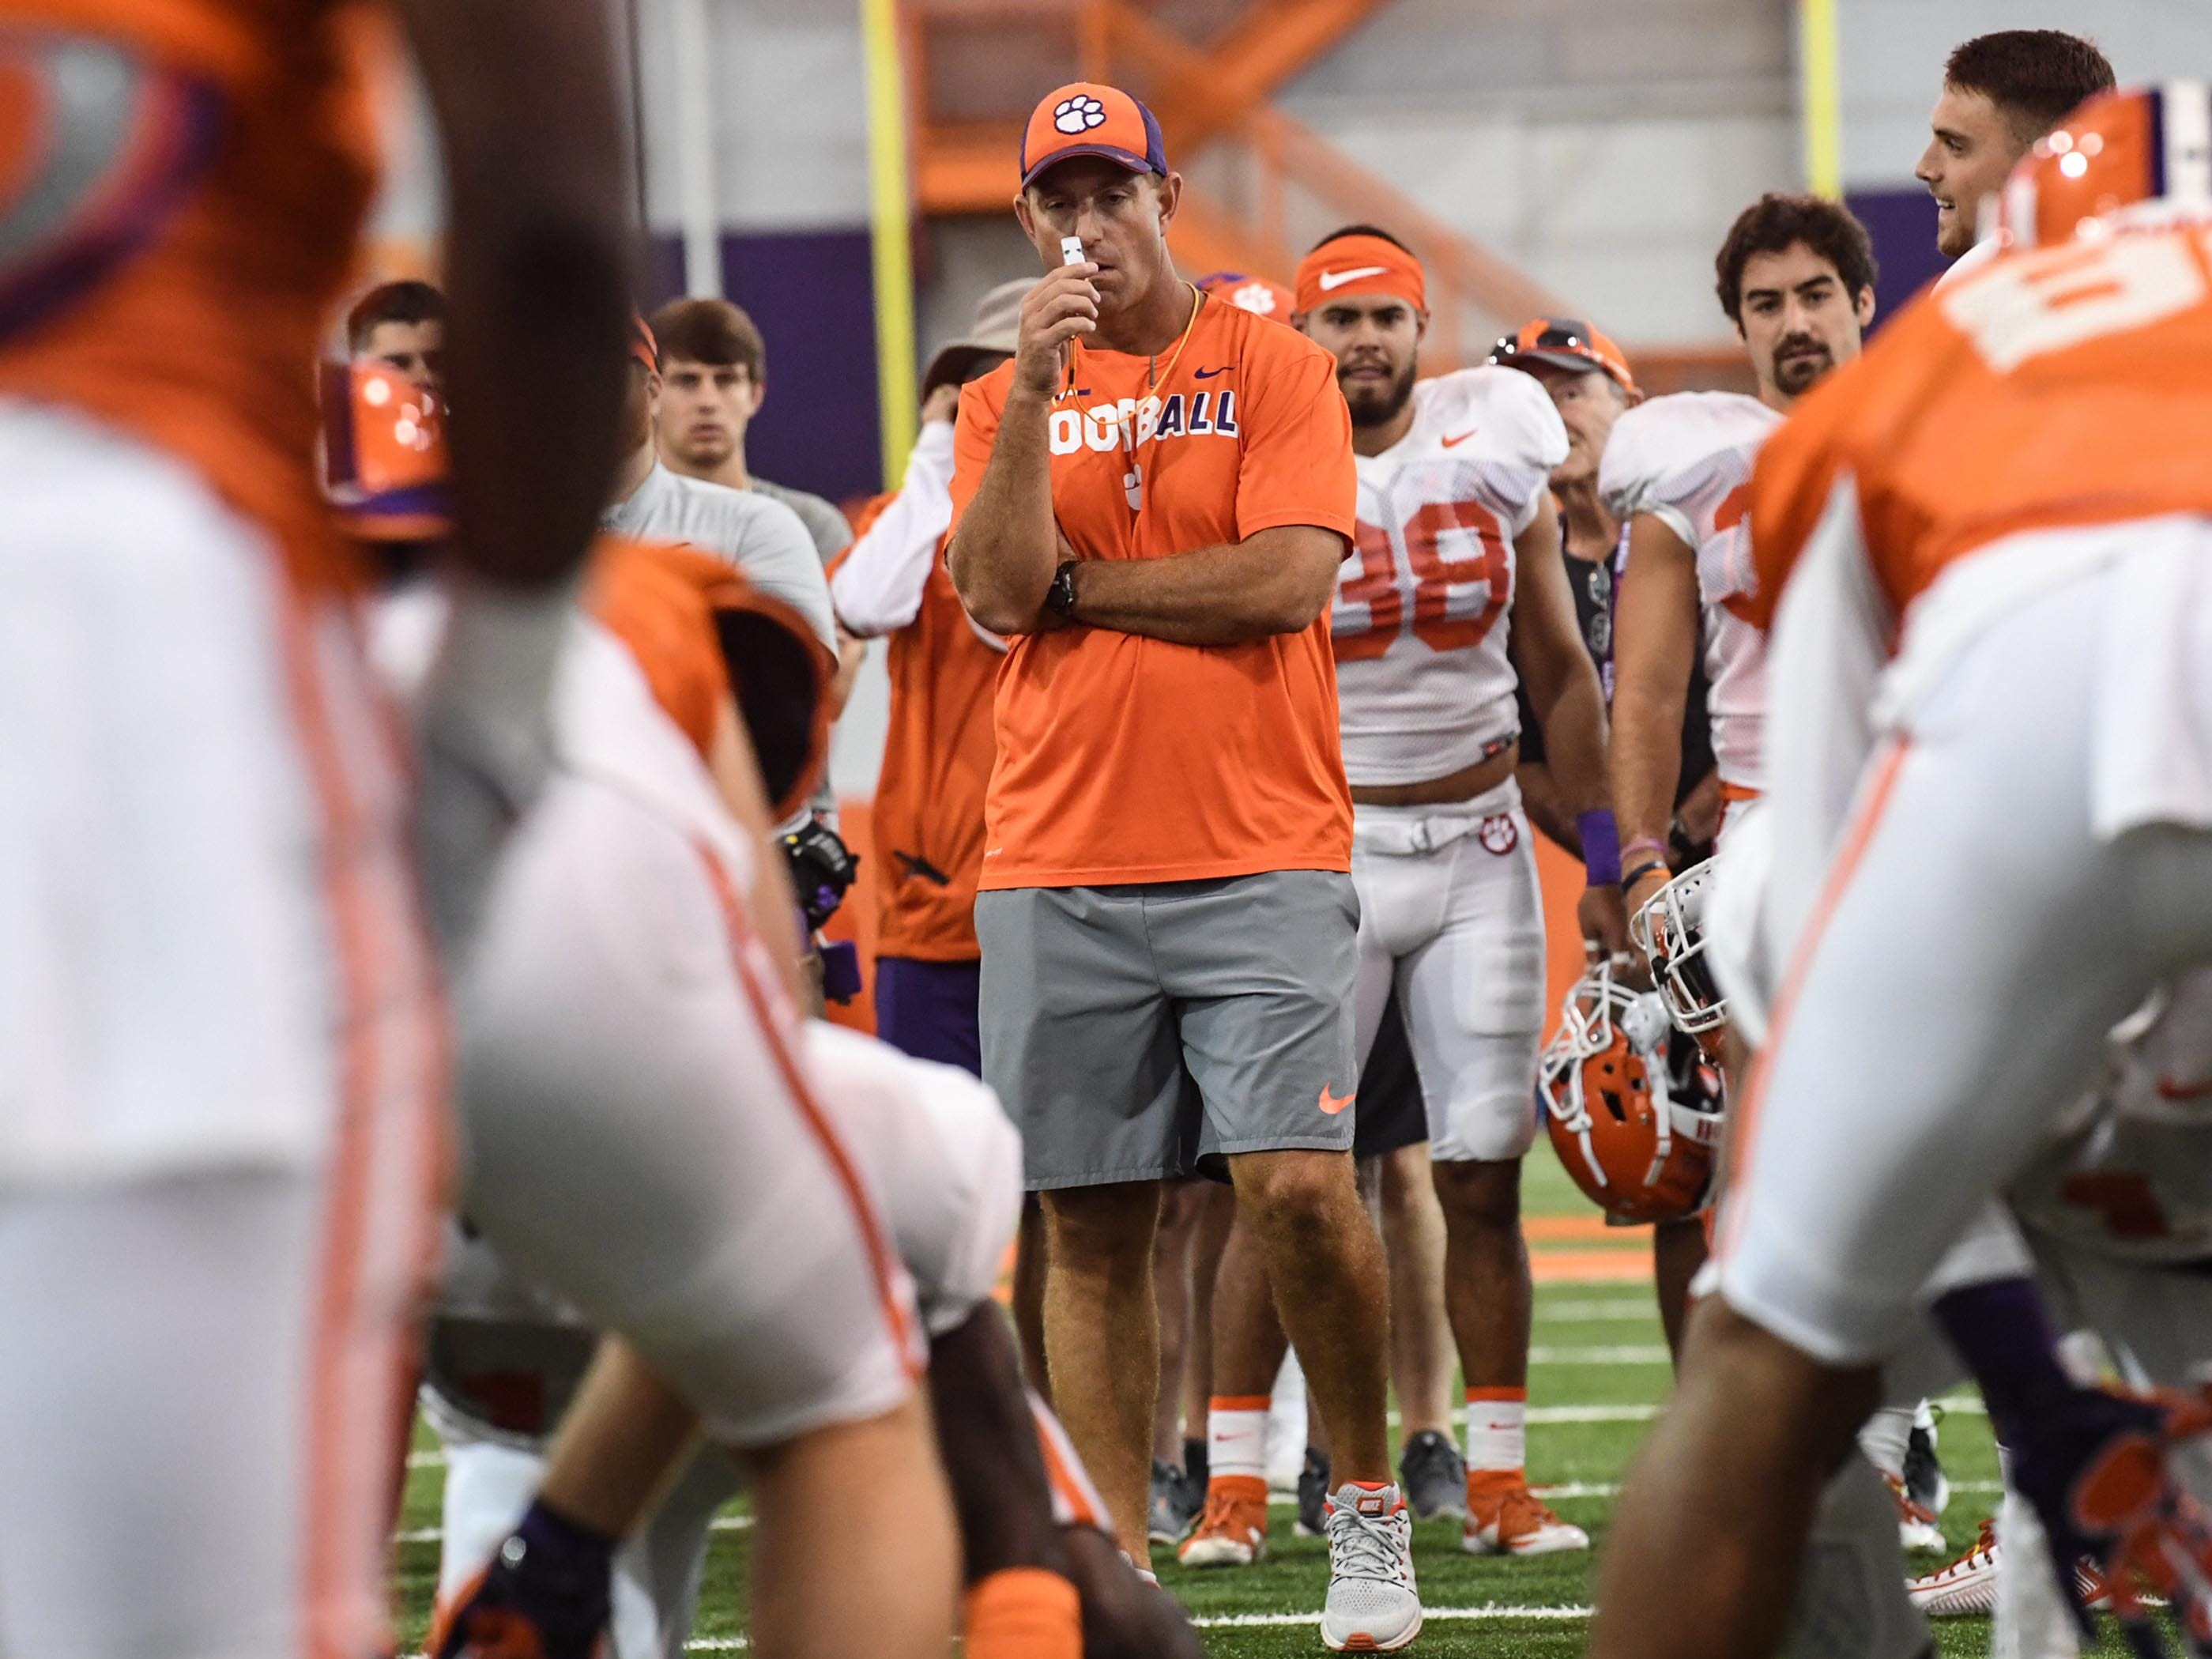 Clemson head coach Dabo Swinney during fall practice in Clemson on Wednesday.